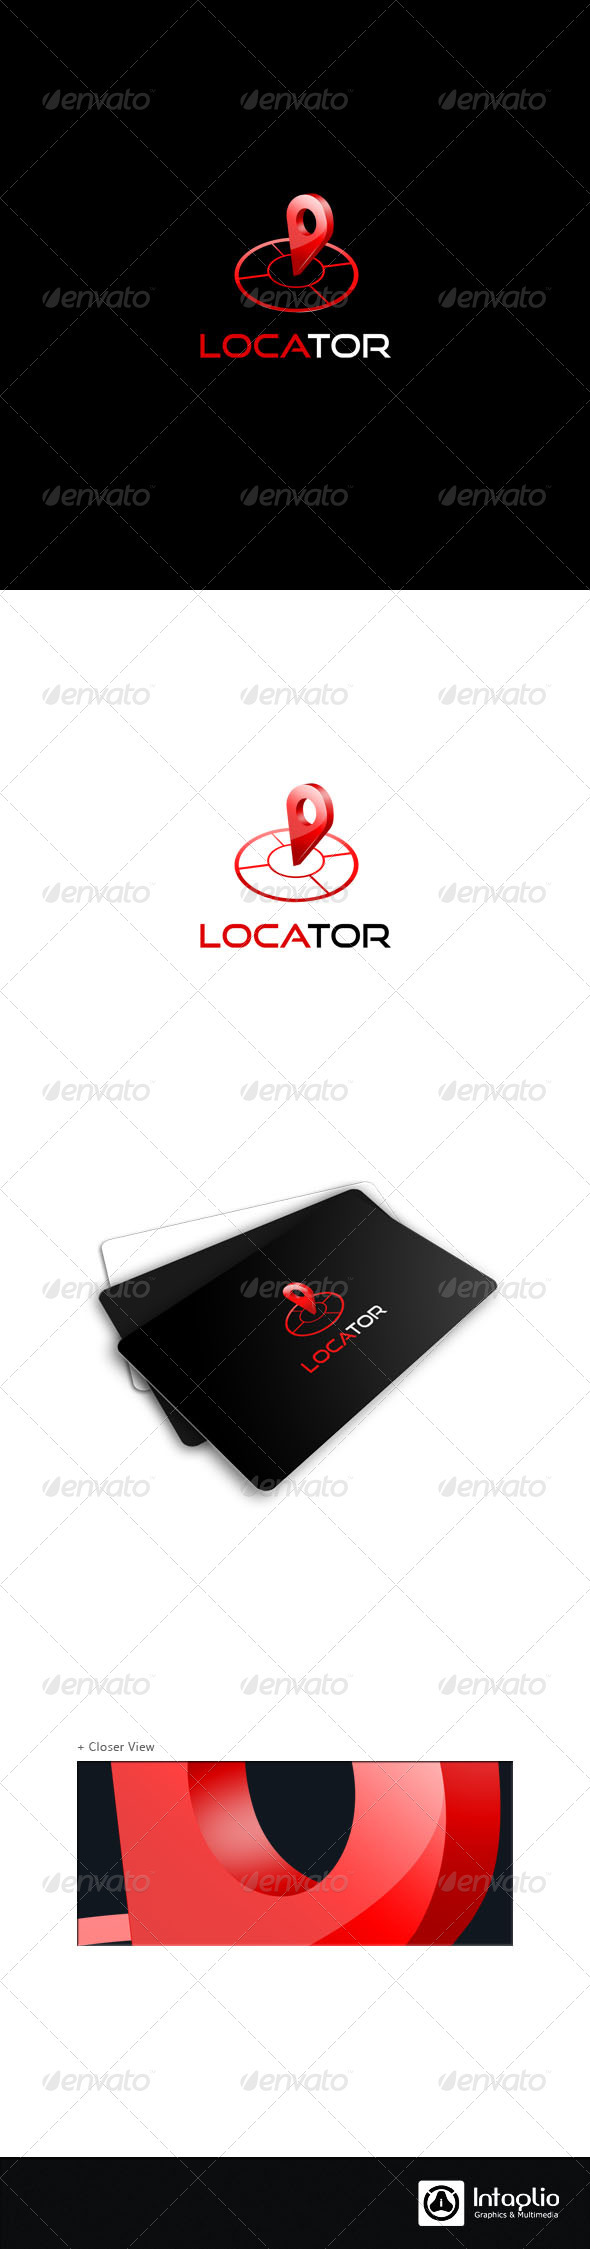 3D Navigation Logo Template - Locator - 3d Abstract